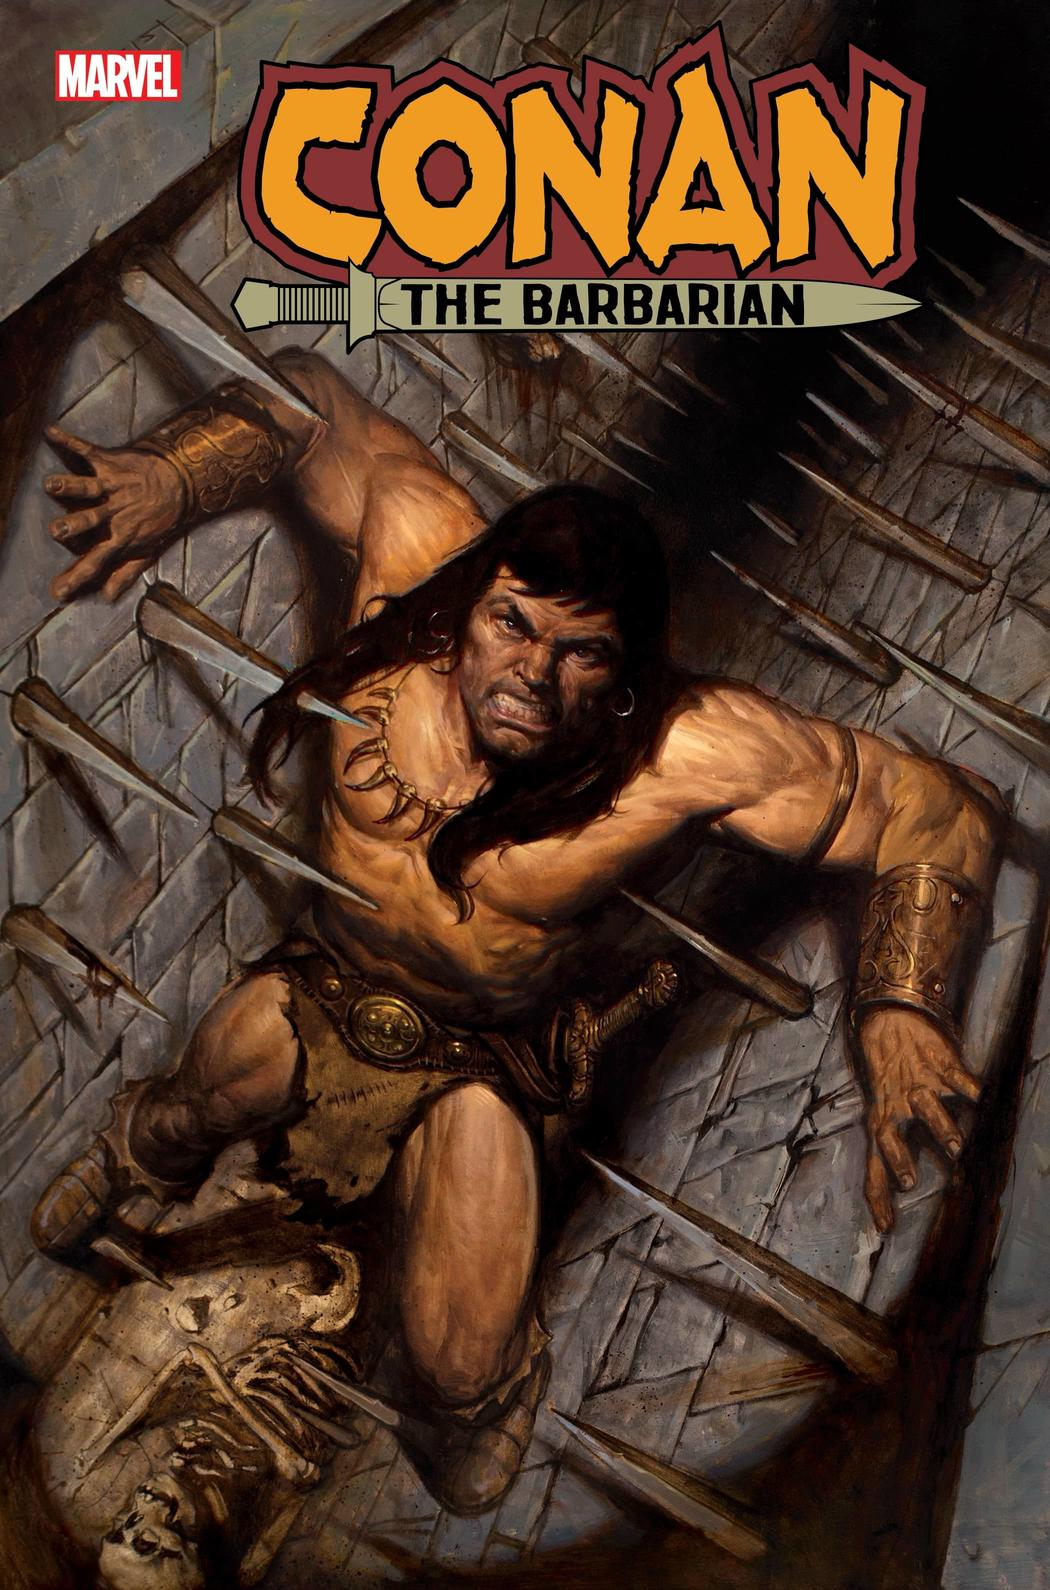 CONAN THE BARBARIAN #15 WRITTEN BY JIM ZUB, ART BY ROGÊ ANTÔNIO, COVER BY E.M. GIST